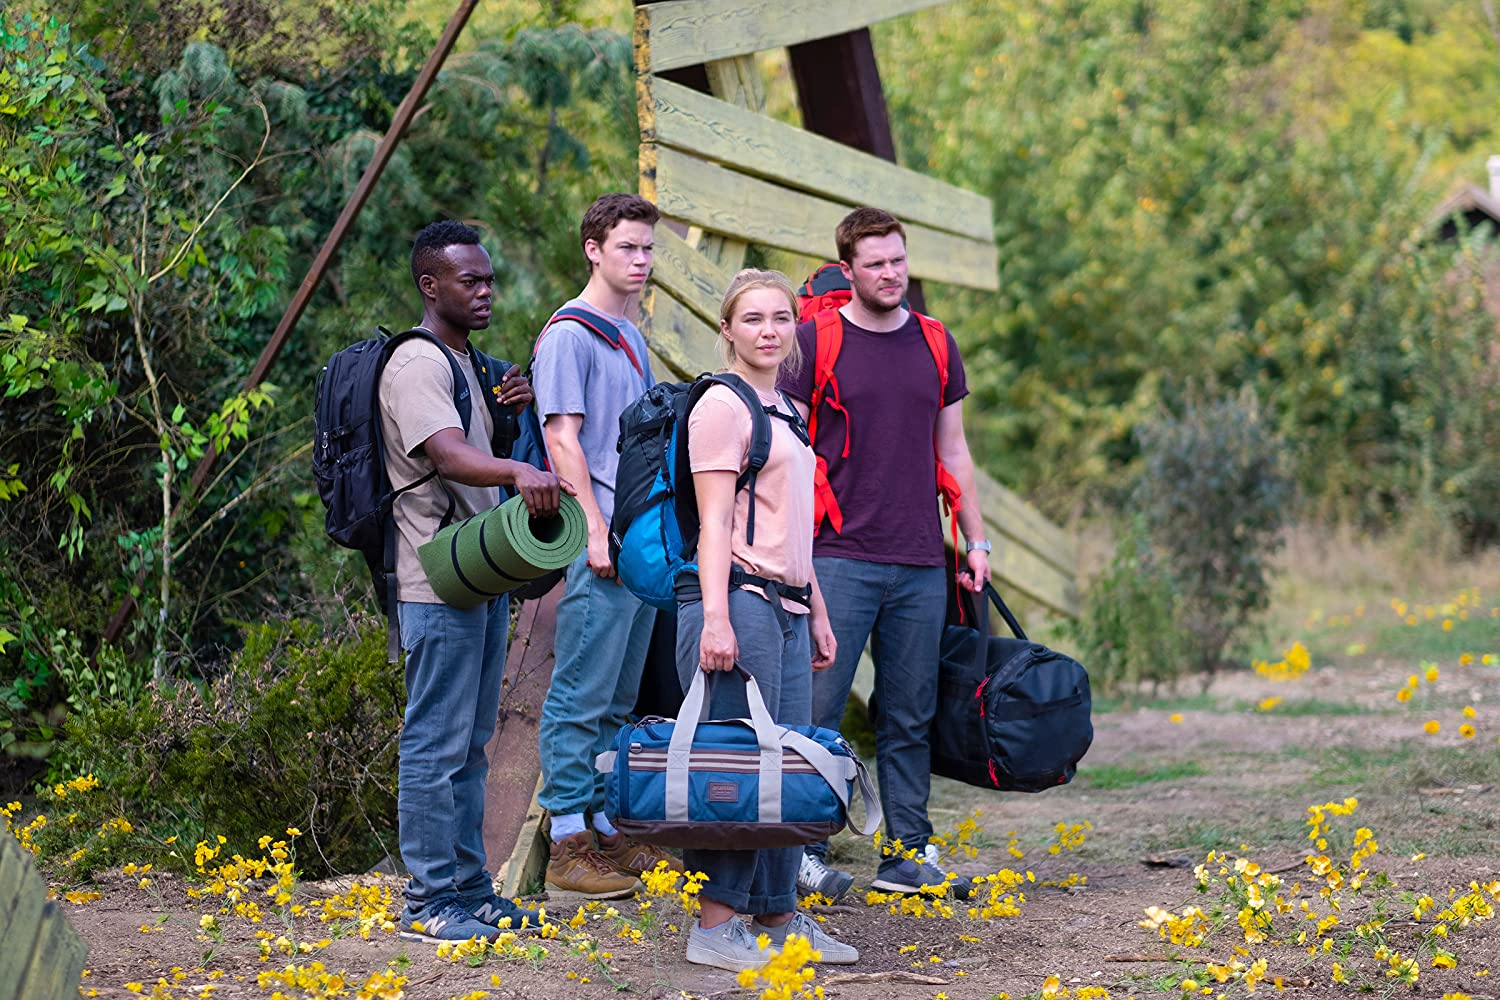 Will Poulter, William Jackson Harper, Jack Reynor, and Florence Pugh in Midsommar (2019)